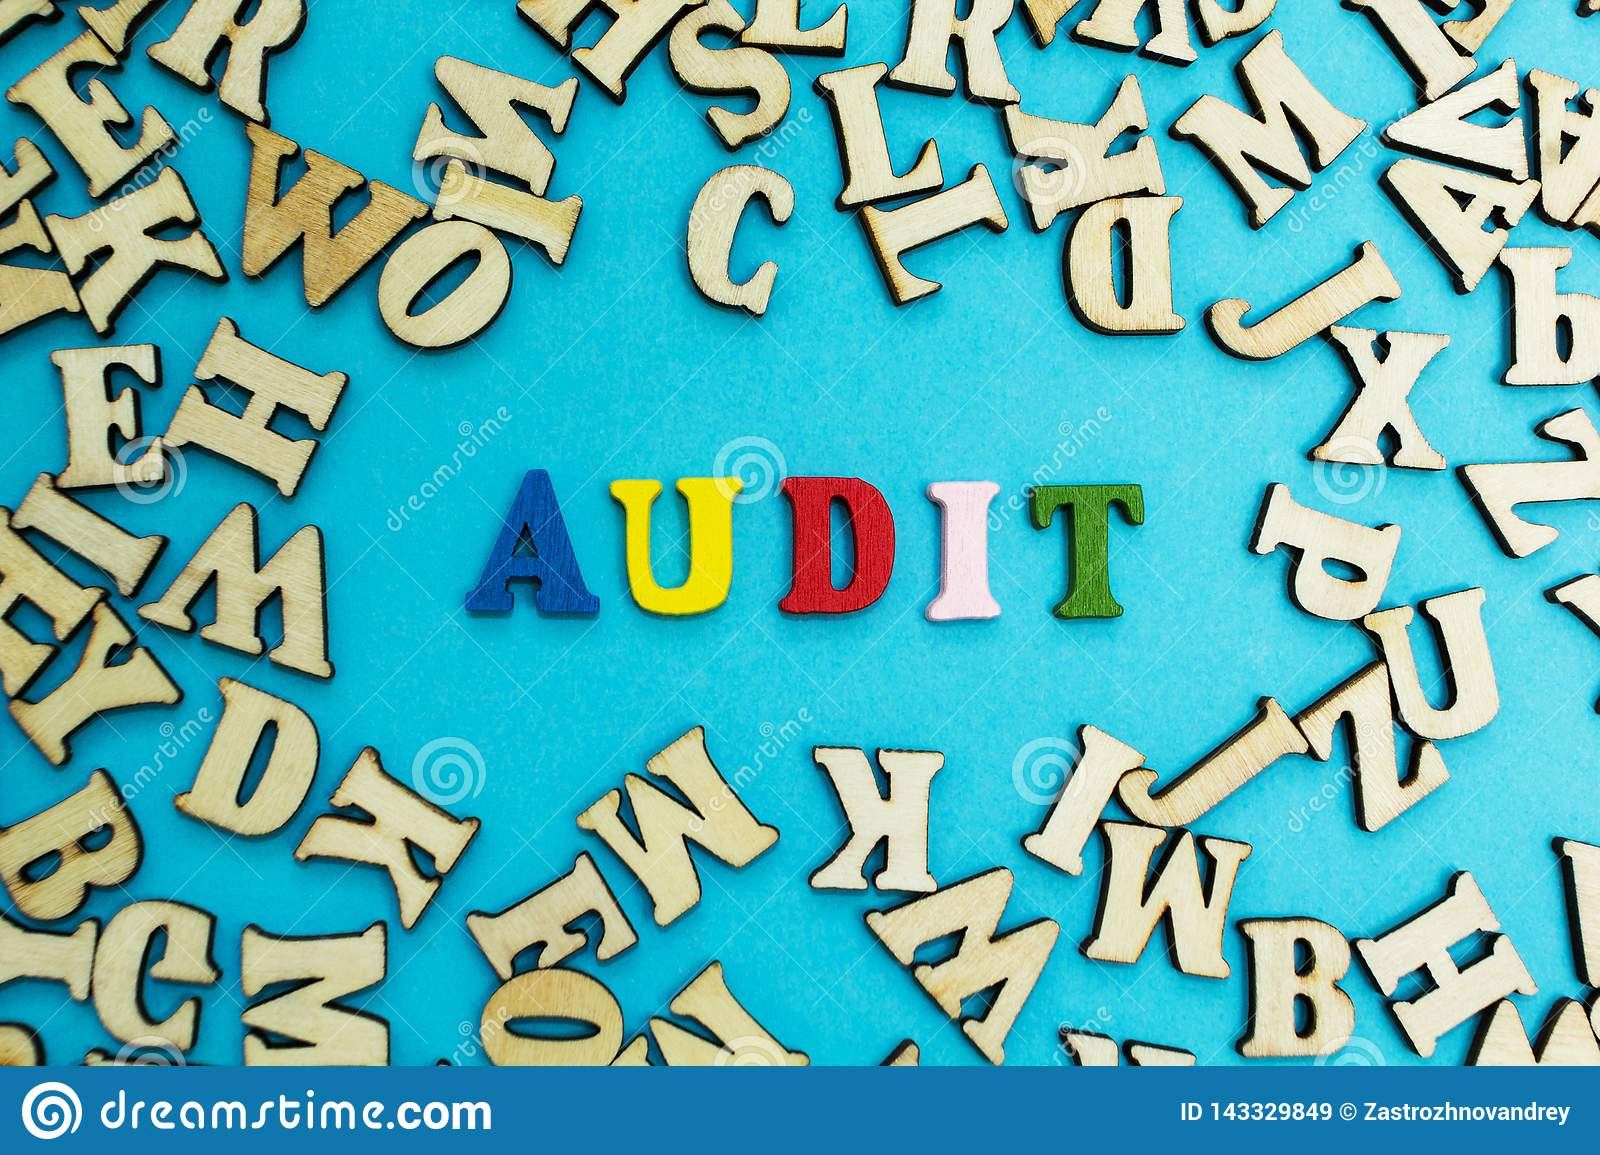 The word `audit` is laid out from multicolored letters on a blue background